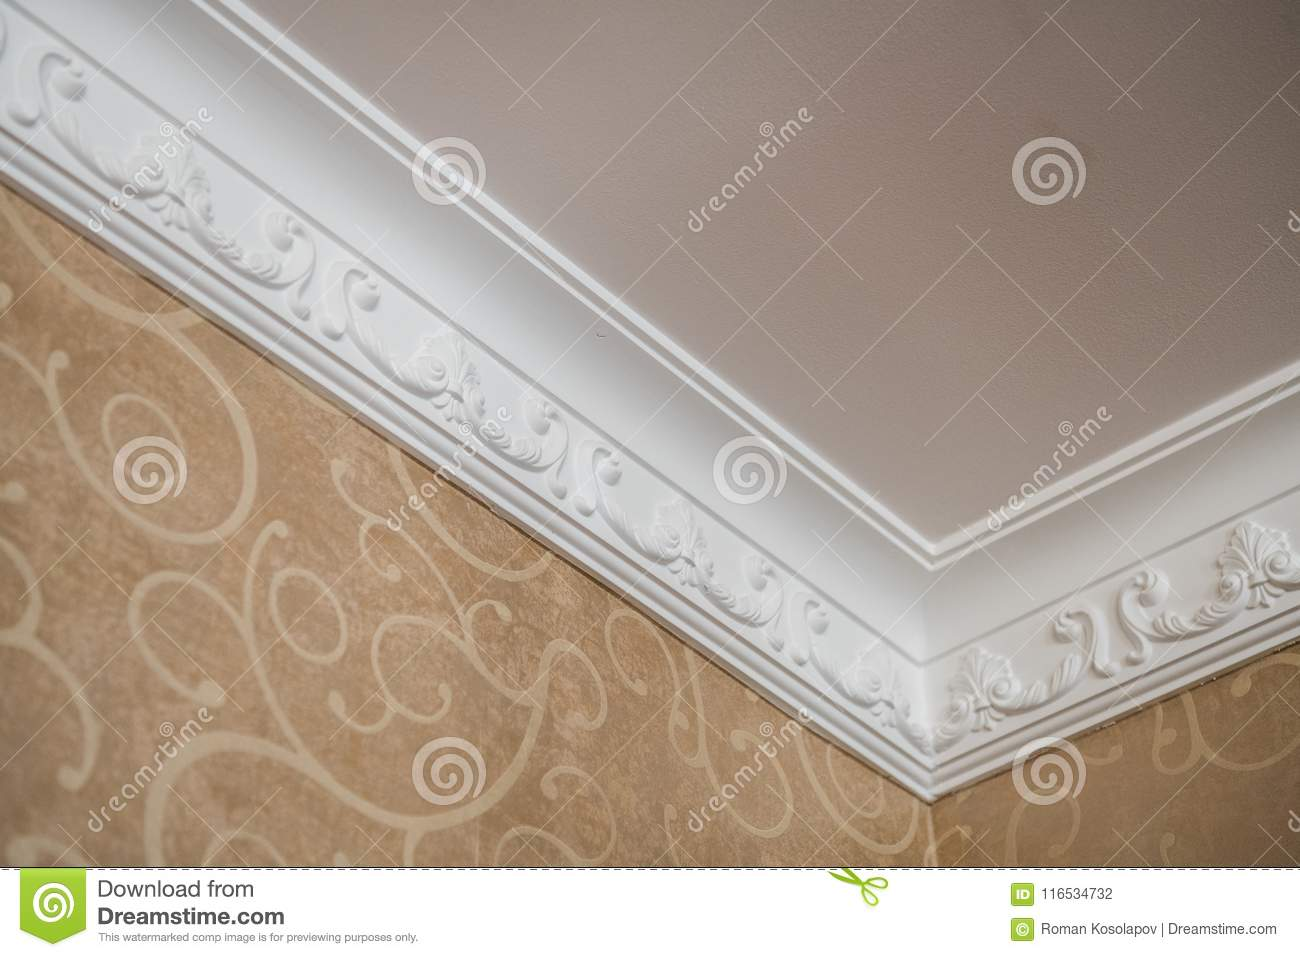 583 Ceiling Moulding Photos Free Royalty Free Stock Photos From Dreamstime